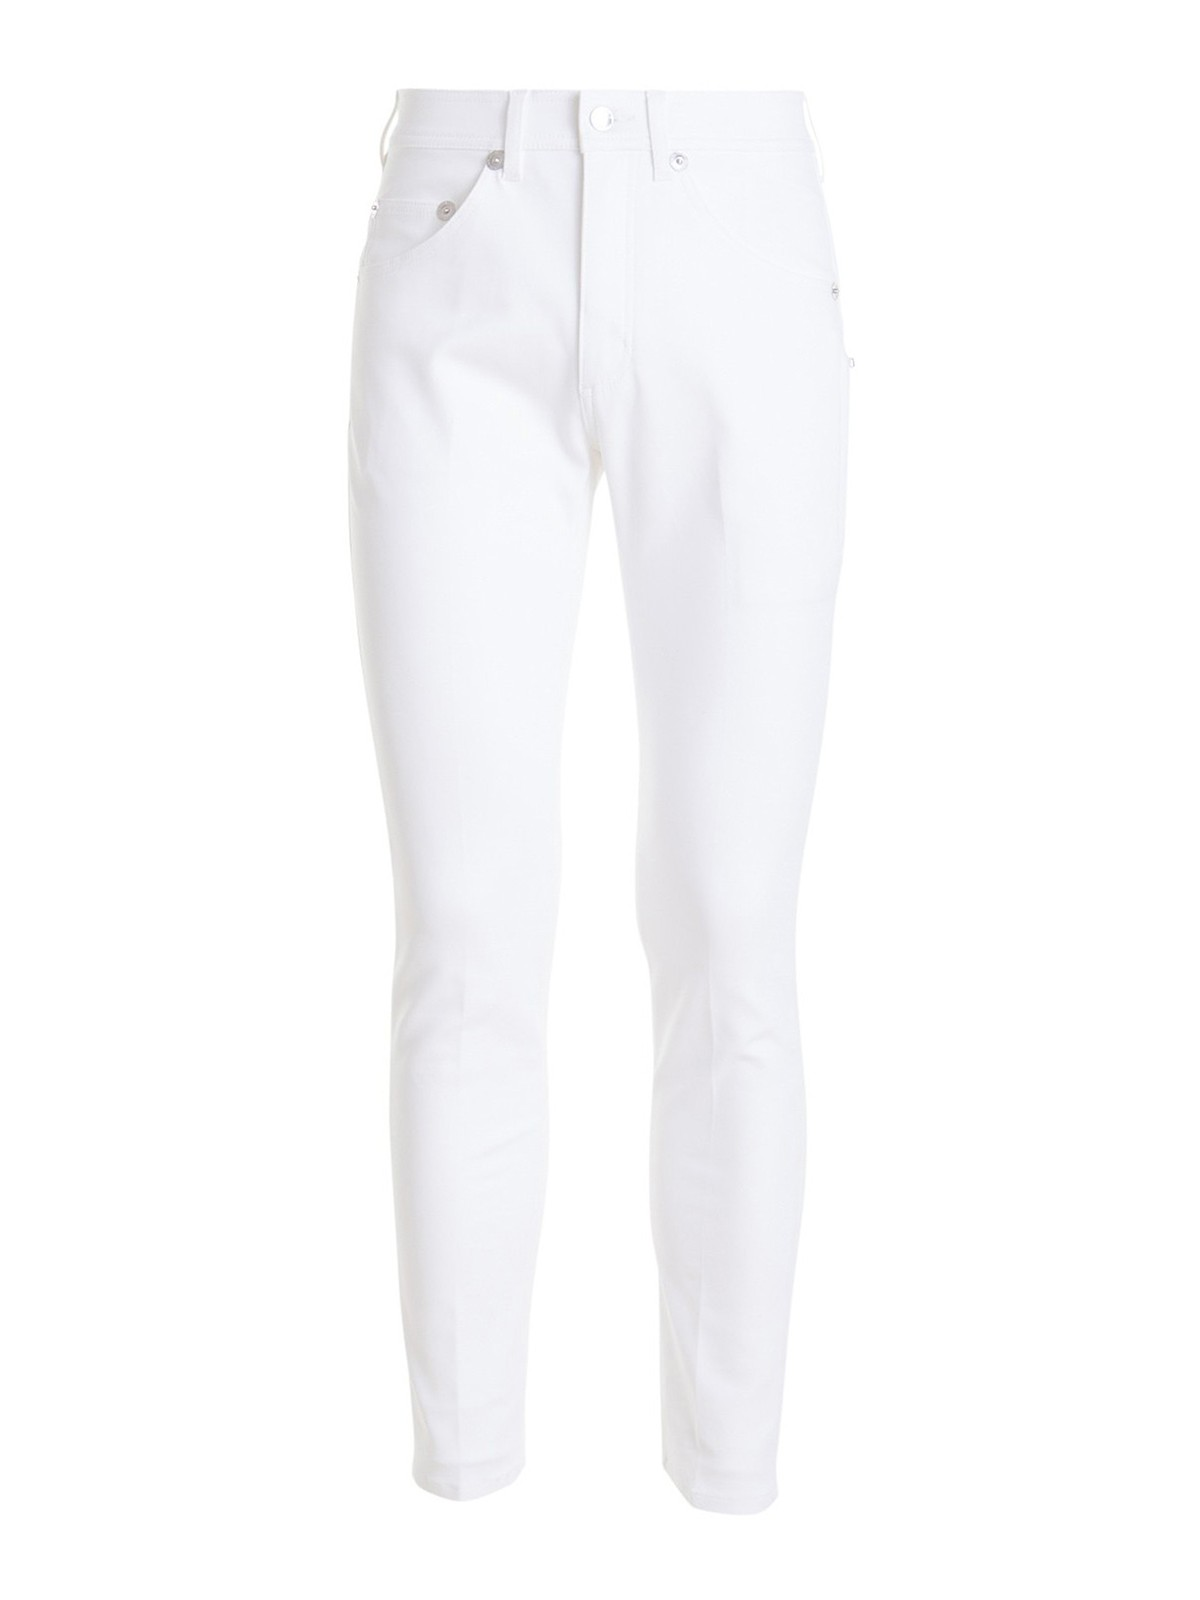 Neil Barrett STRETCH DENIM SKINNY JEANS